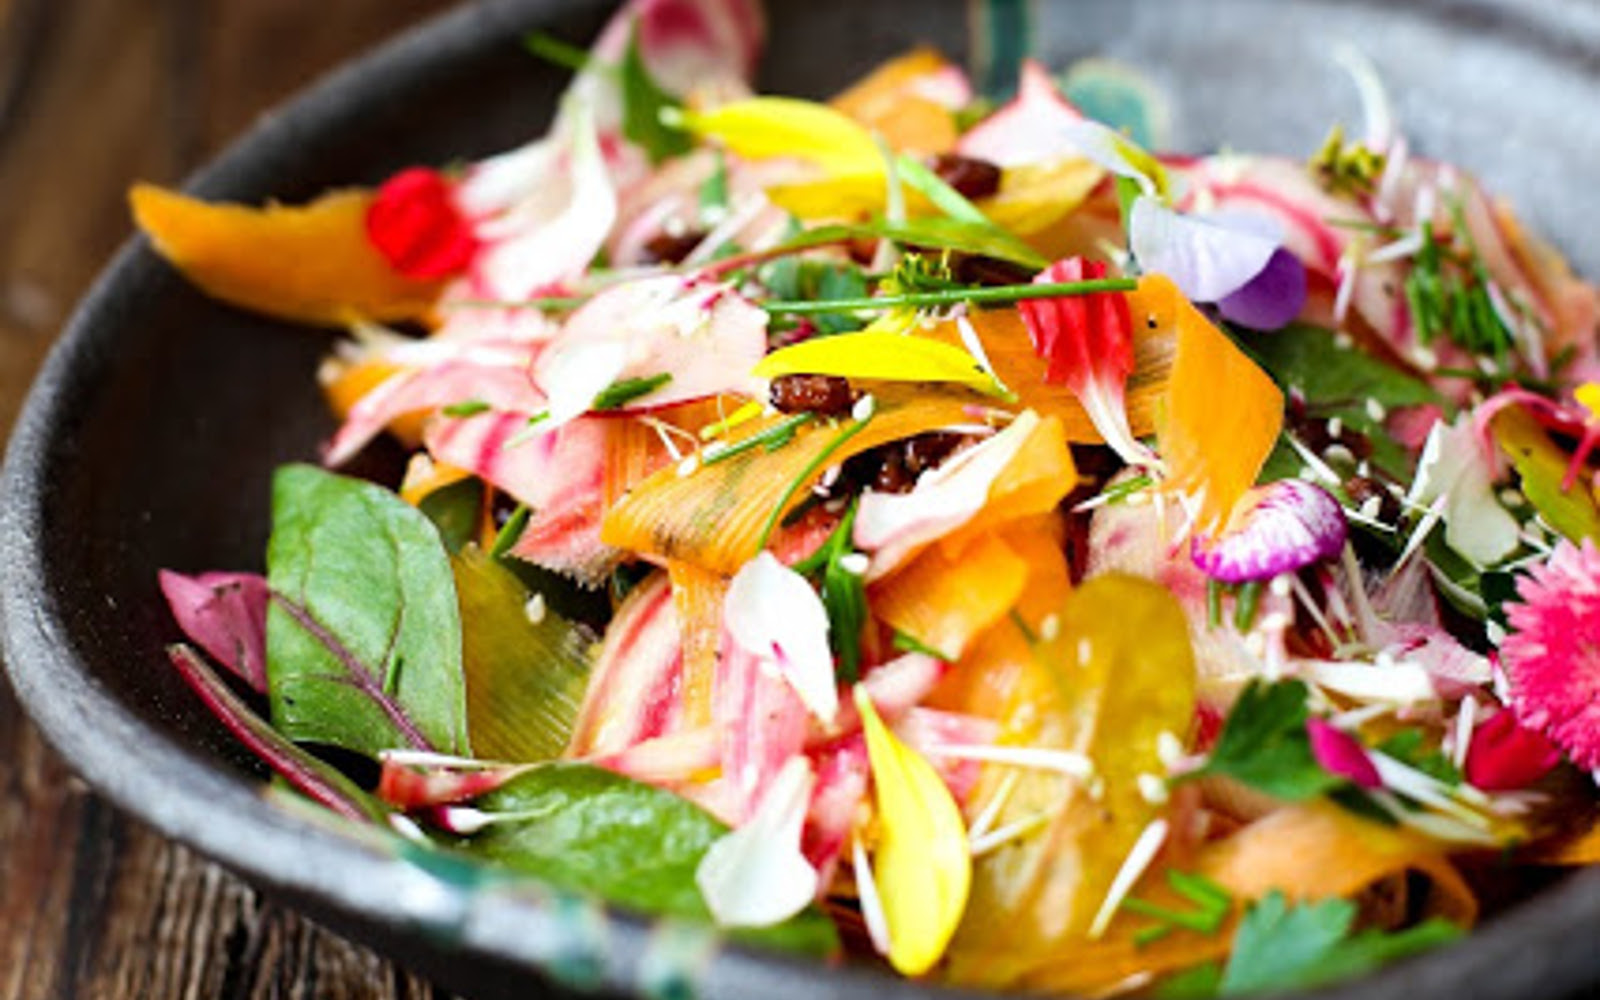 Spring Salad With Carrots, Beets, and Flowers